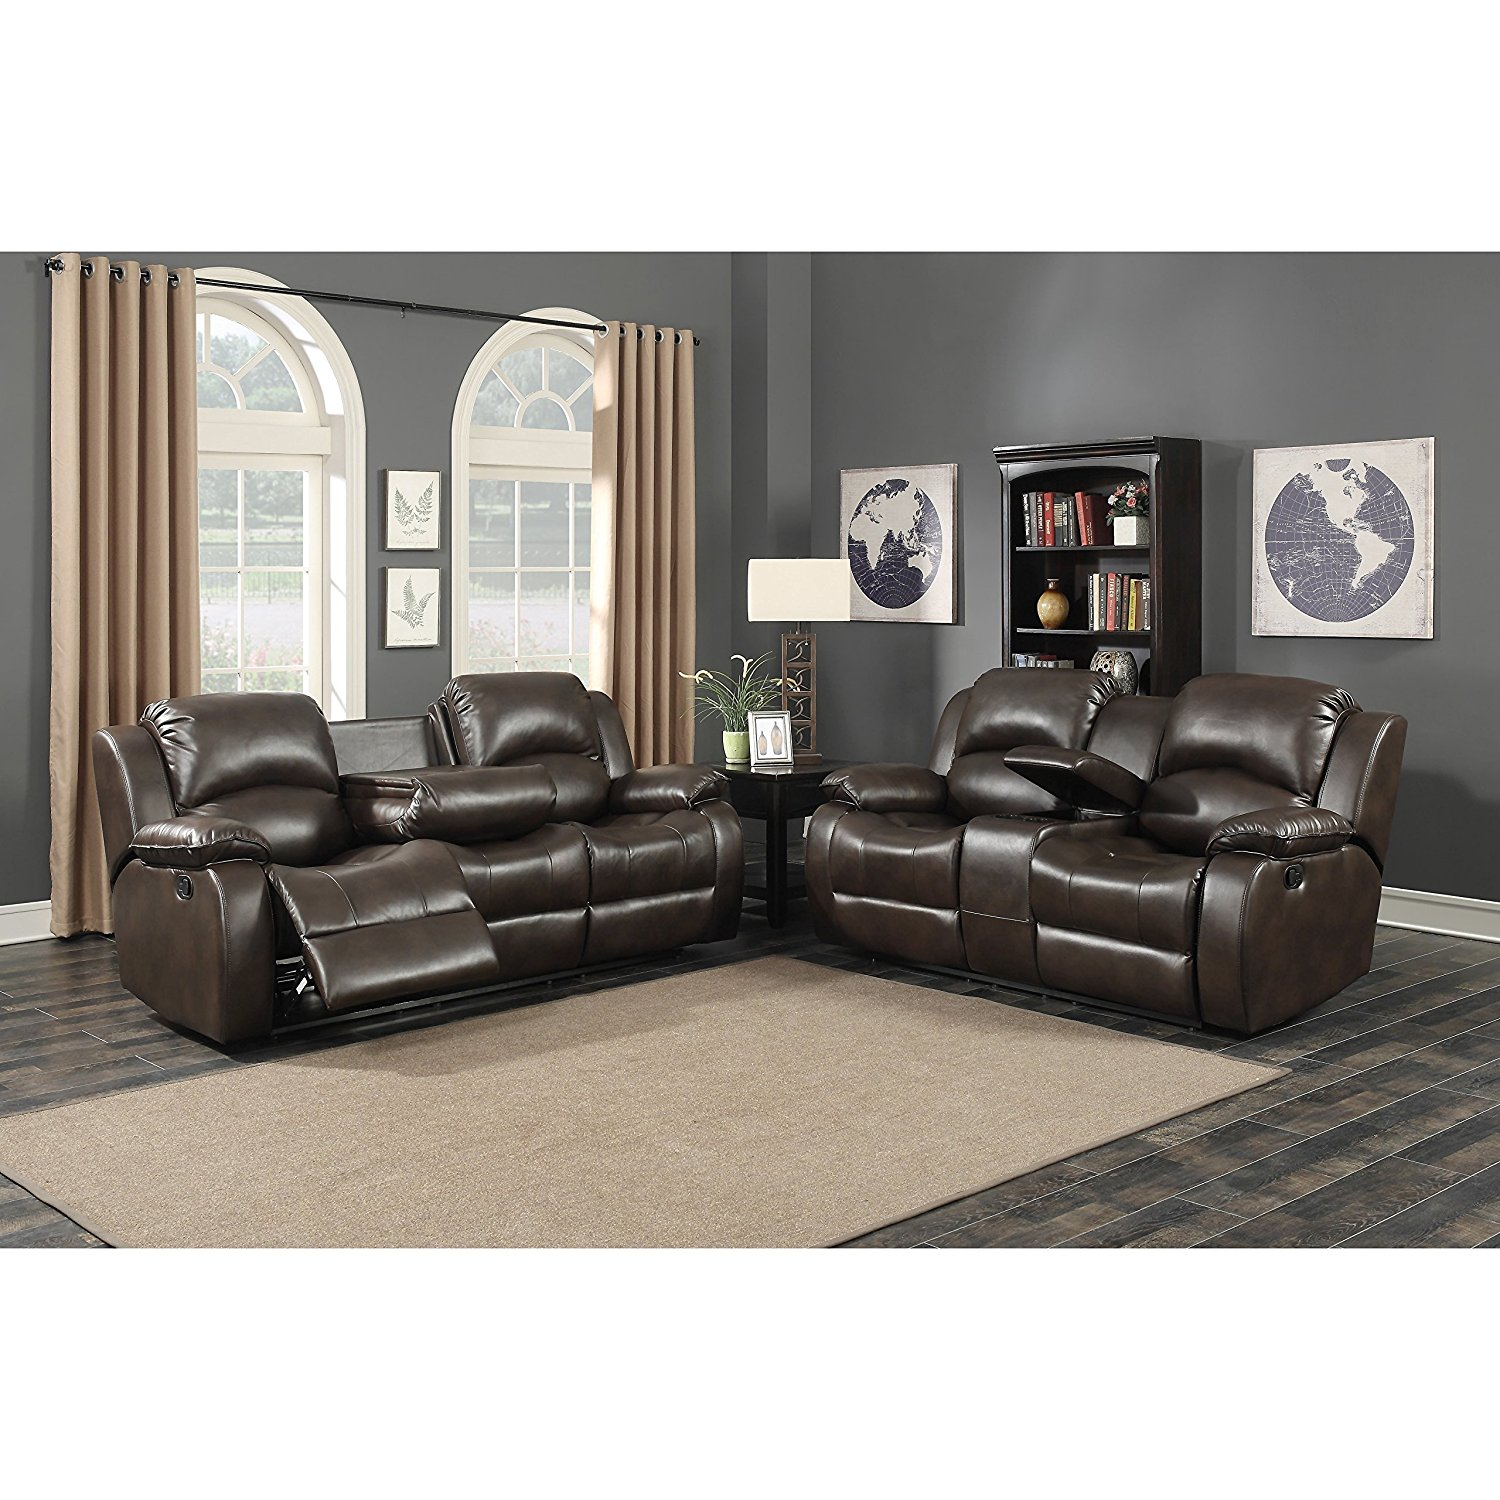 ryker reclining sofa and loveseat 2 piece set black n grey corner cheap living room recliners find deals on get quotations ac pacific samara brown with 4